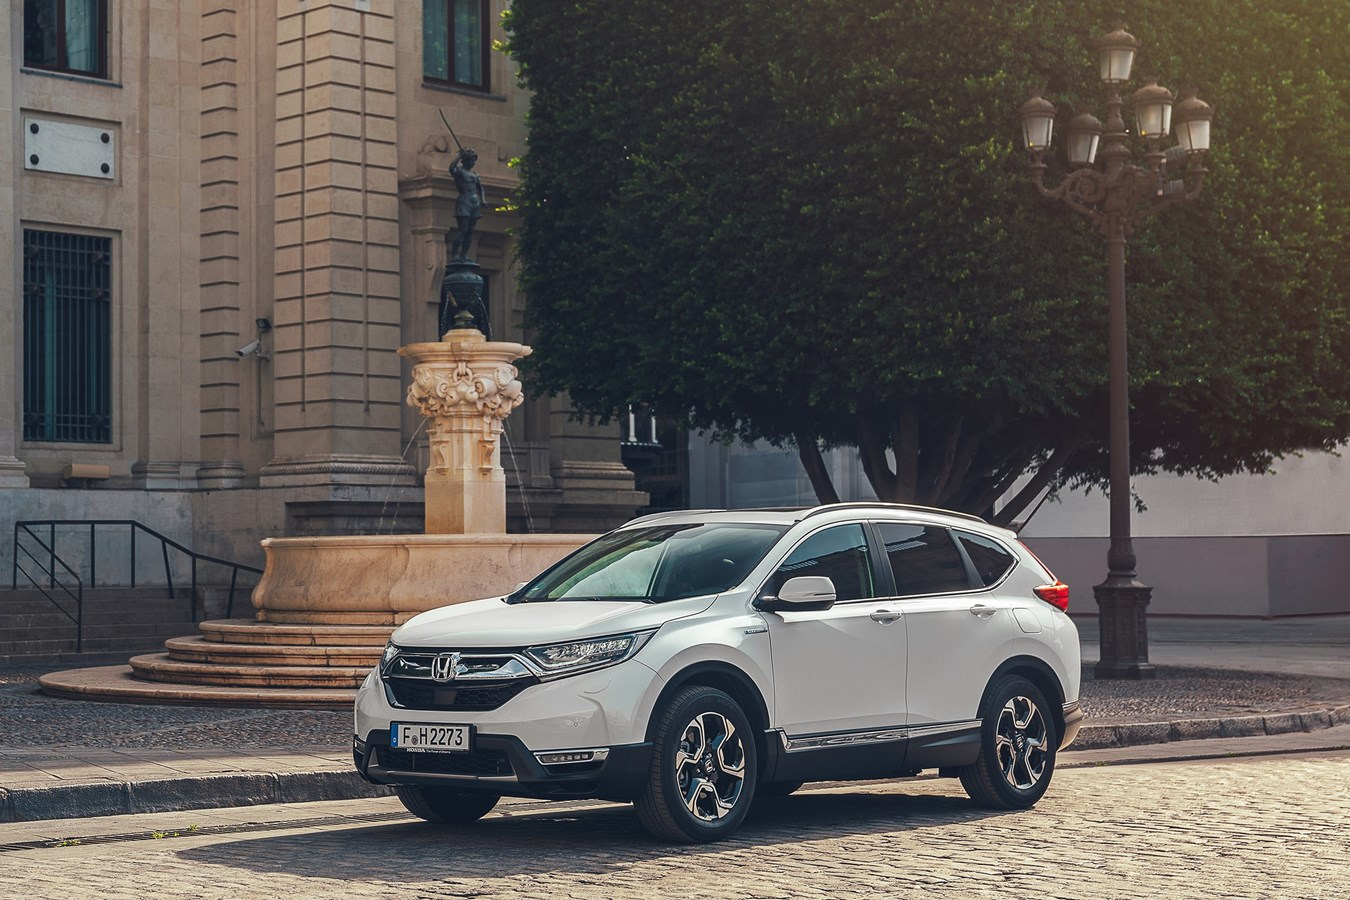 honda confirms economy and emissions data for cr v hybrid and announces key exhibits at the. Black Bedroom Furniture Sets. Home Design Ideas